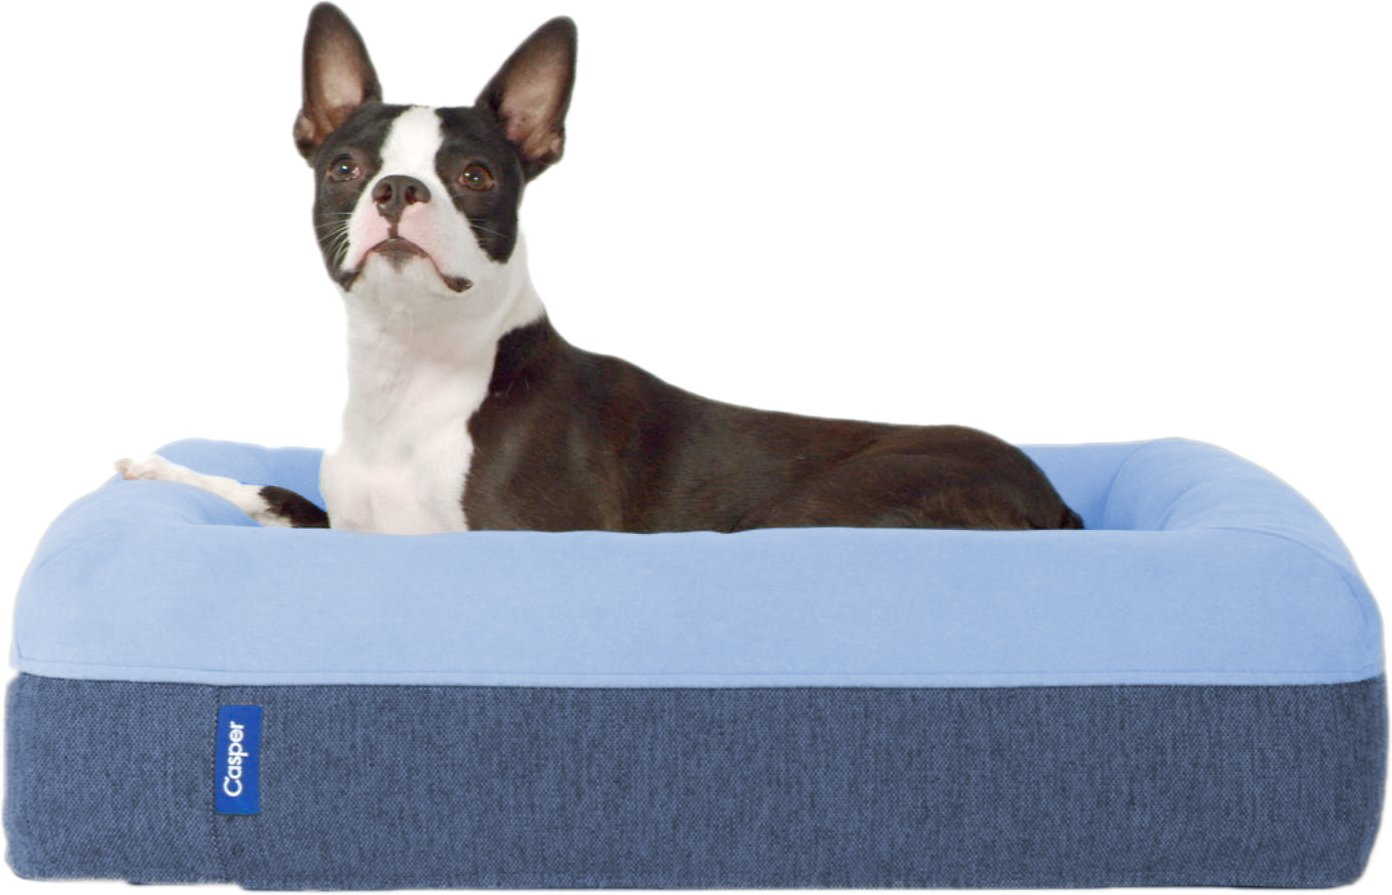 metal hellow bedding dog ideas christmas indestructible noten ga smart animals dane xl bed crate flea heavy about crates in preferential beds amazon to duty on